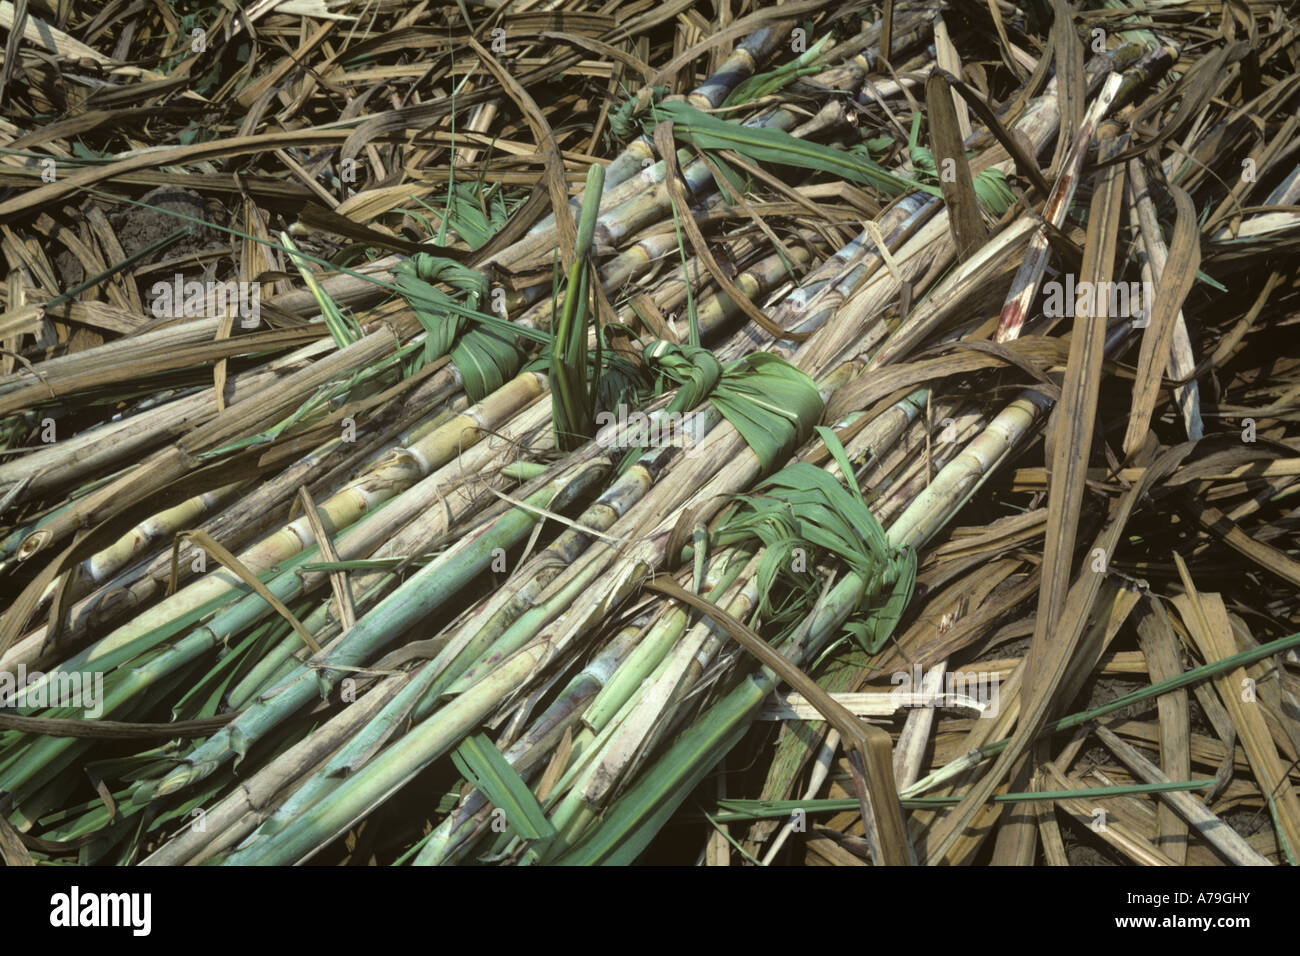 Sugar cane cut in bundles and tied with sugar cane leaves Thailand - Stock Image